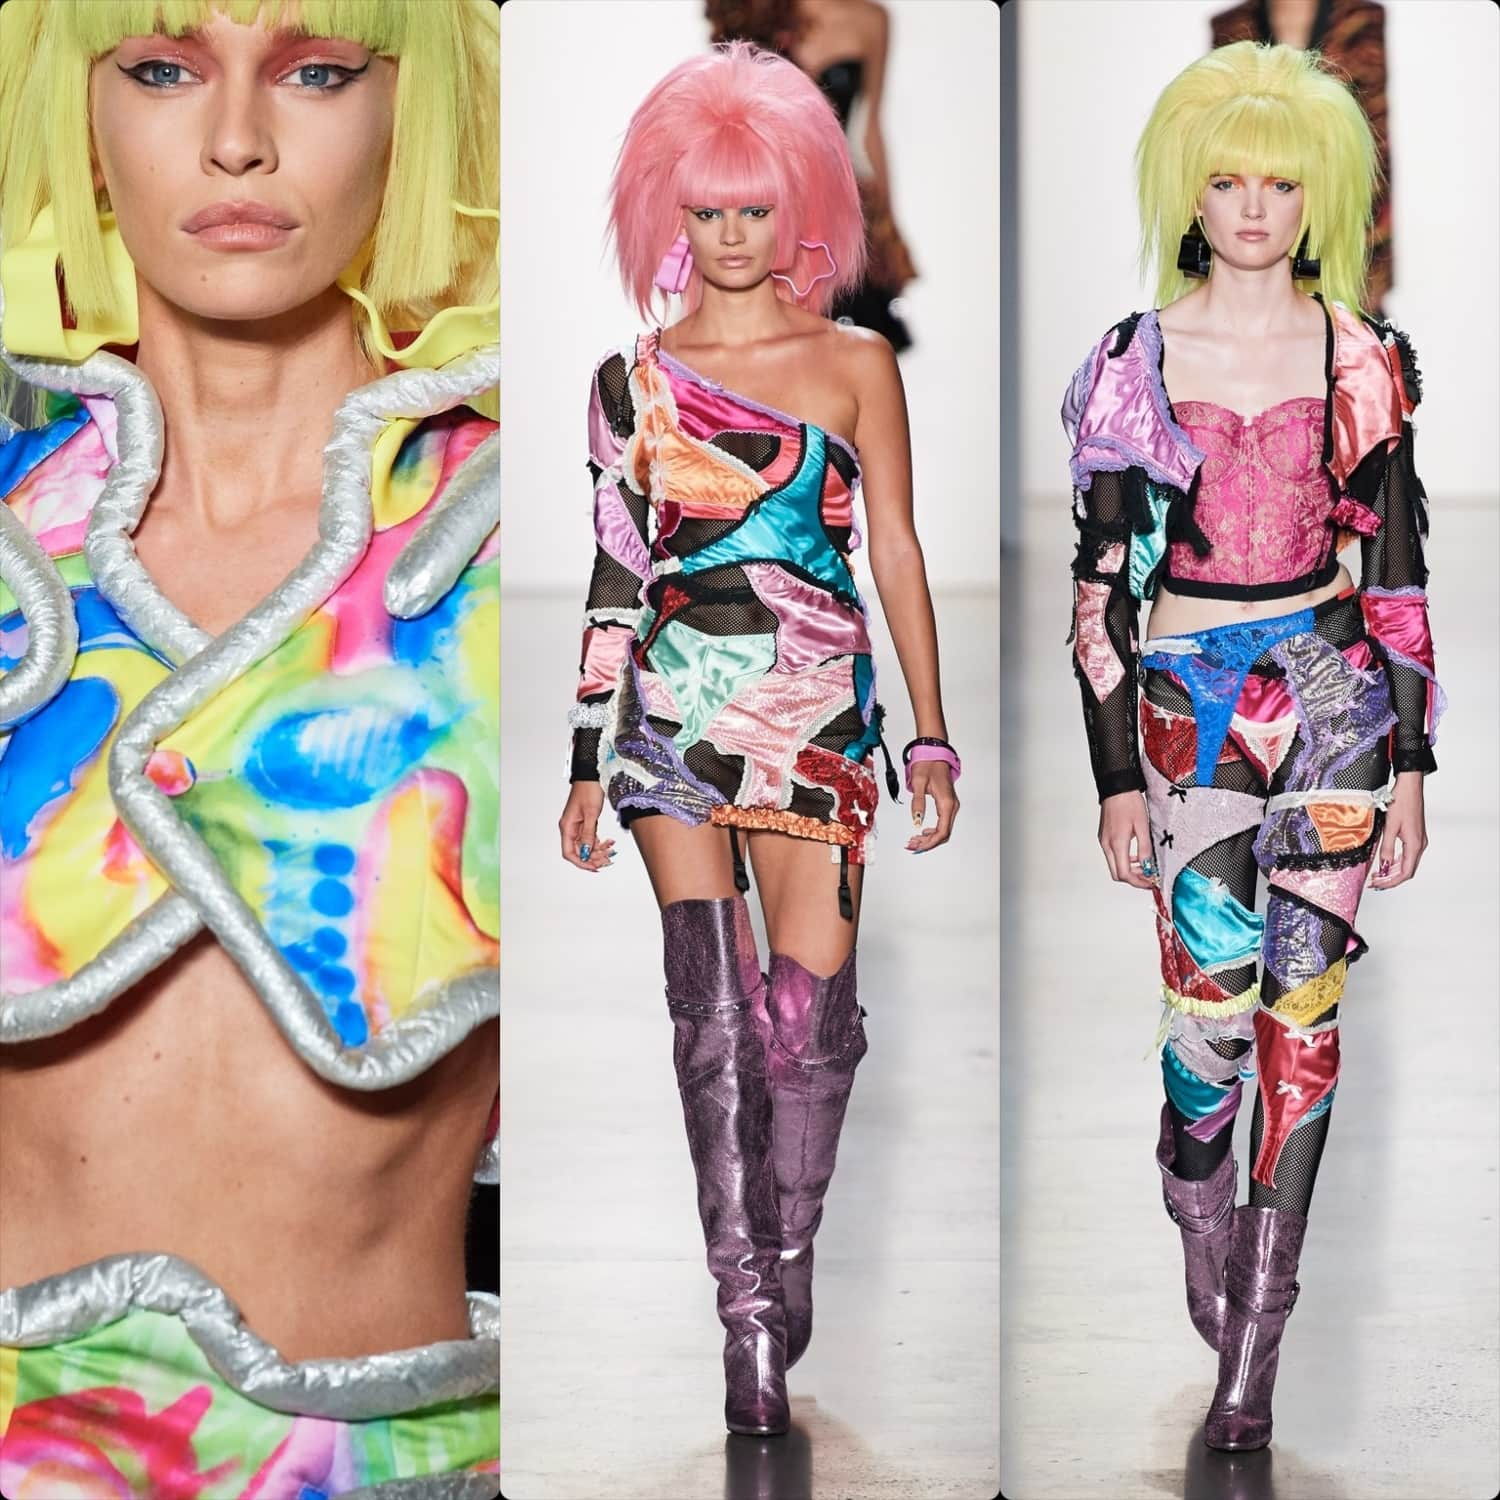 Jeremy Scott Spring Summer 2020 New York. RUNWAY MAGAZINE ® Collections. Photo RUNWAY: Filippo Fior / Gorunway.com, Photo DETAILS: Armando Grillo / Gorunway.com